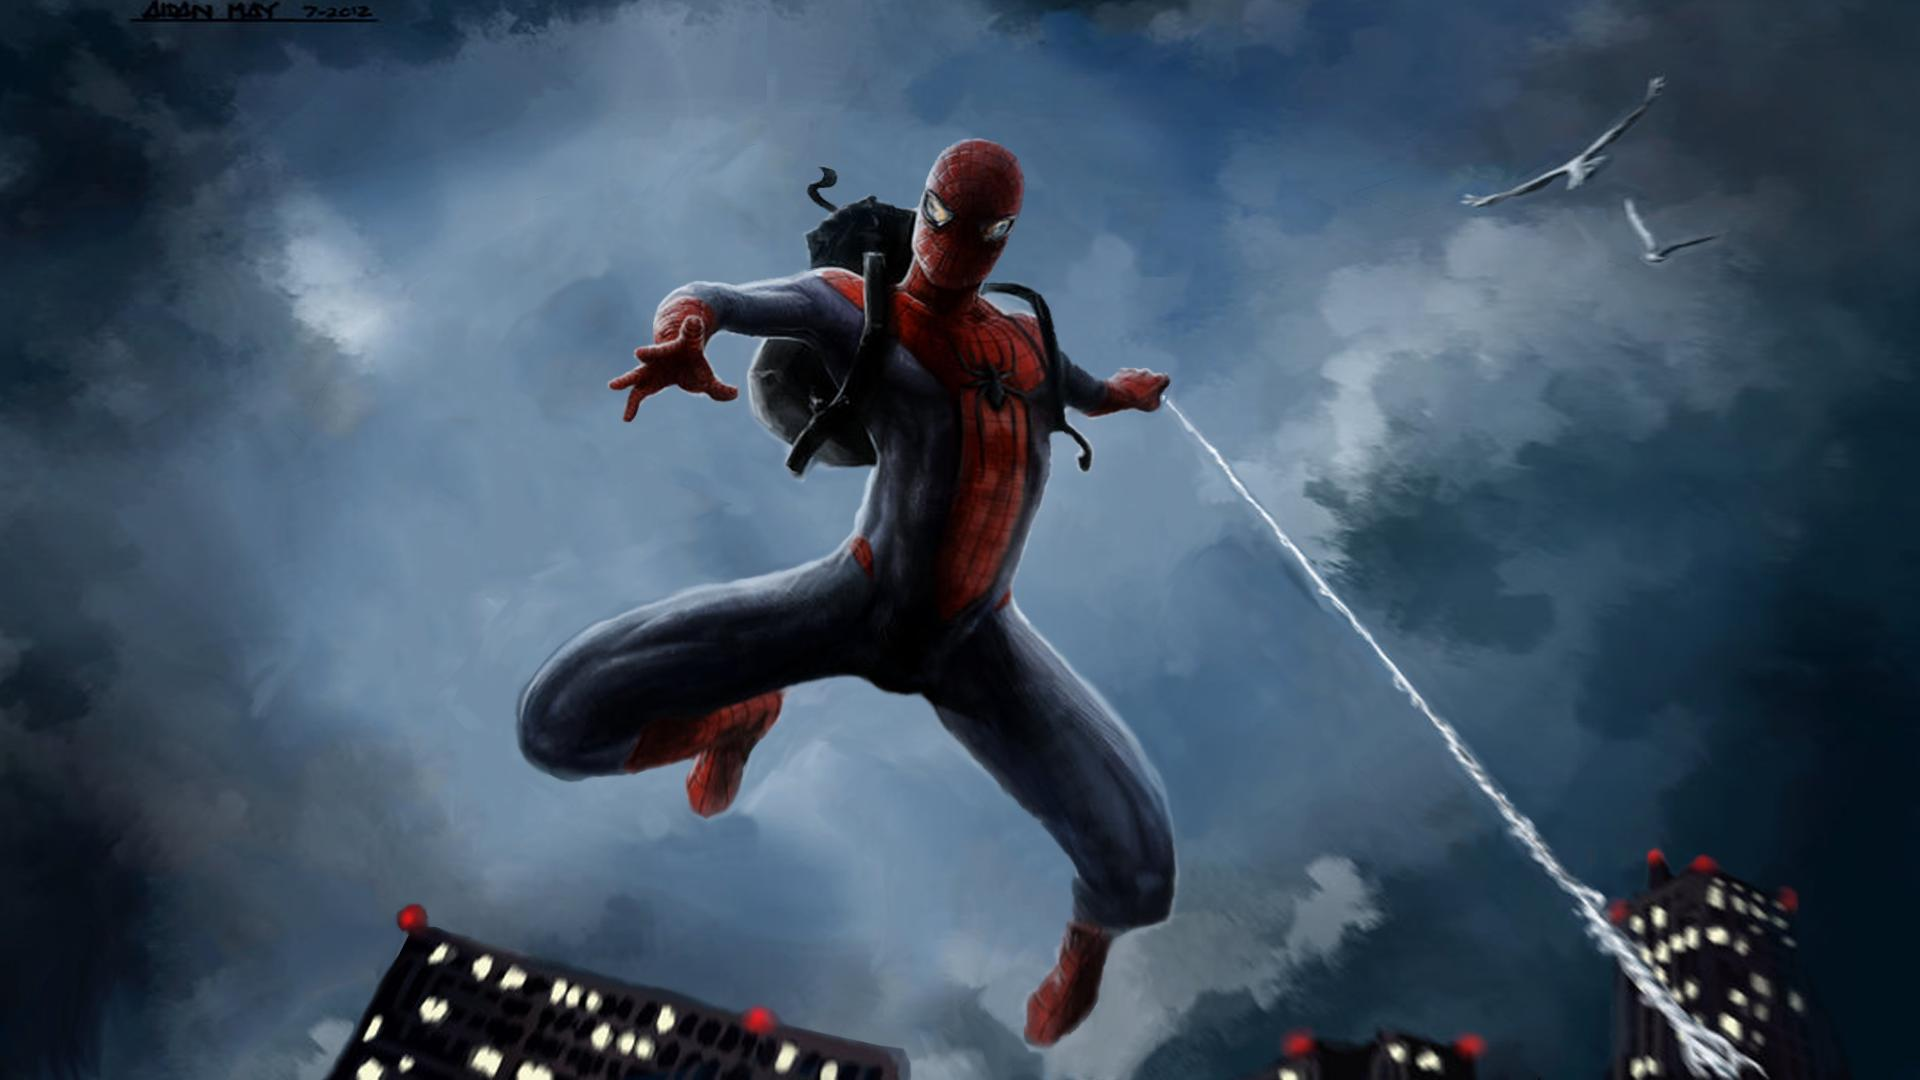 Games : SpiderMan Wallpapers SpiderMan Backgrounds 1080x1920px .